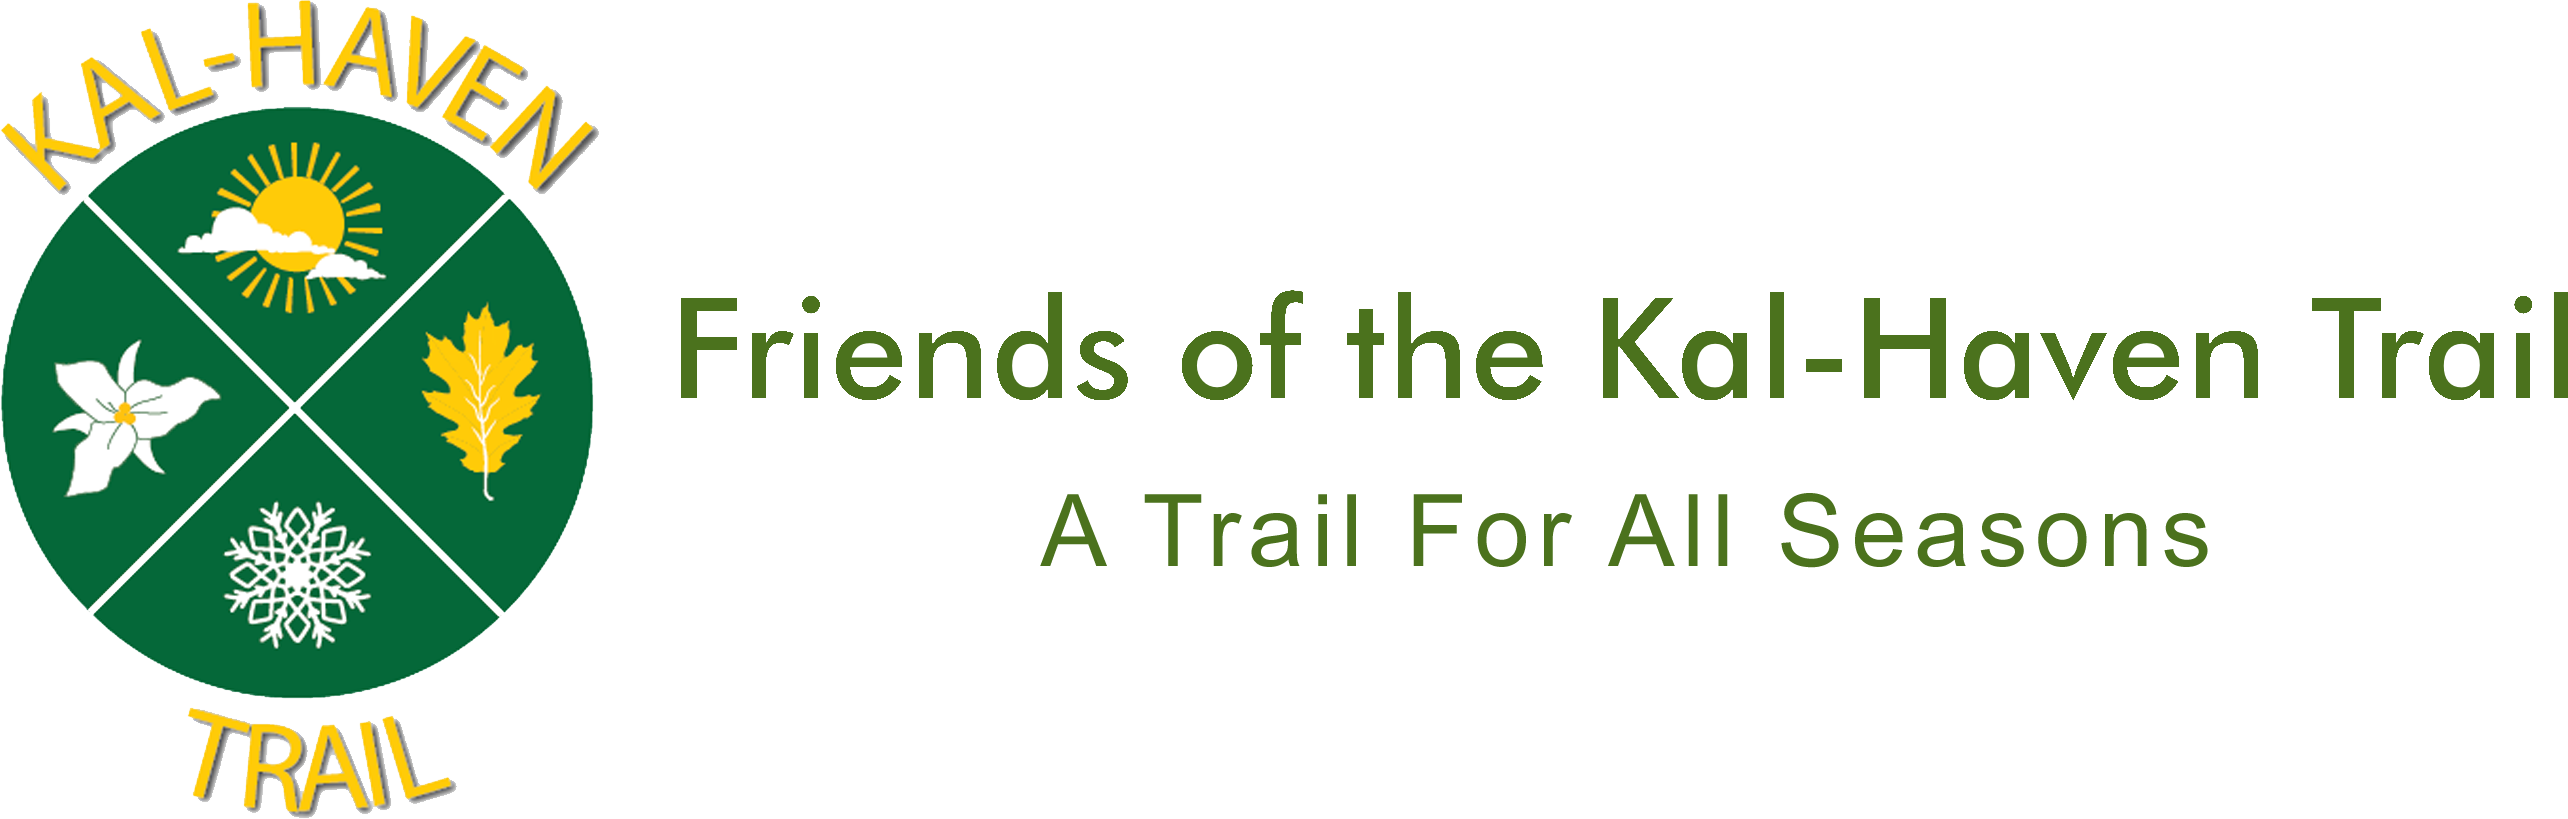 Friends of the Kal-Haven Trail